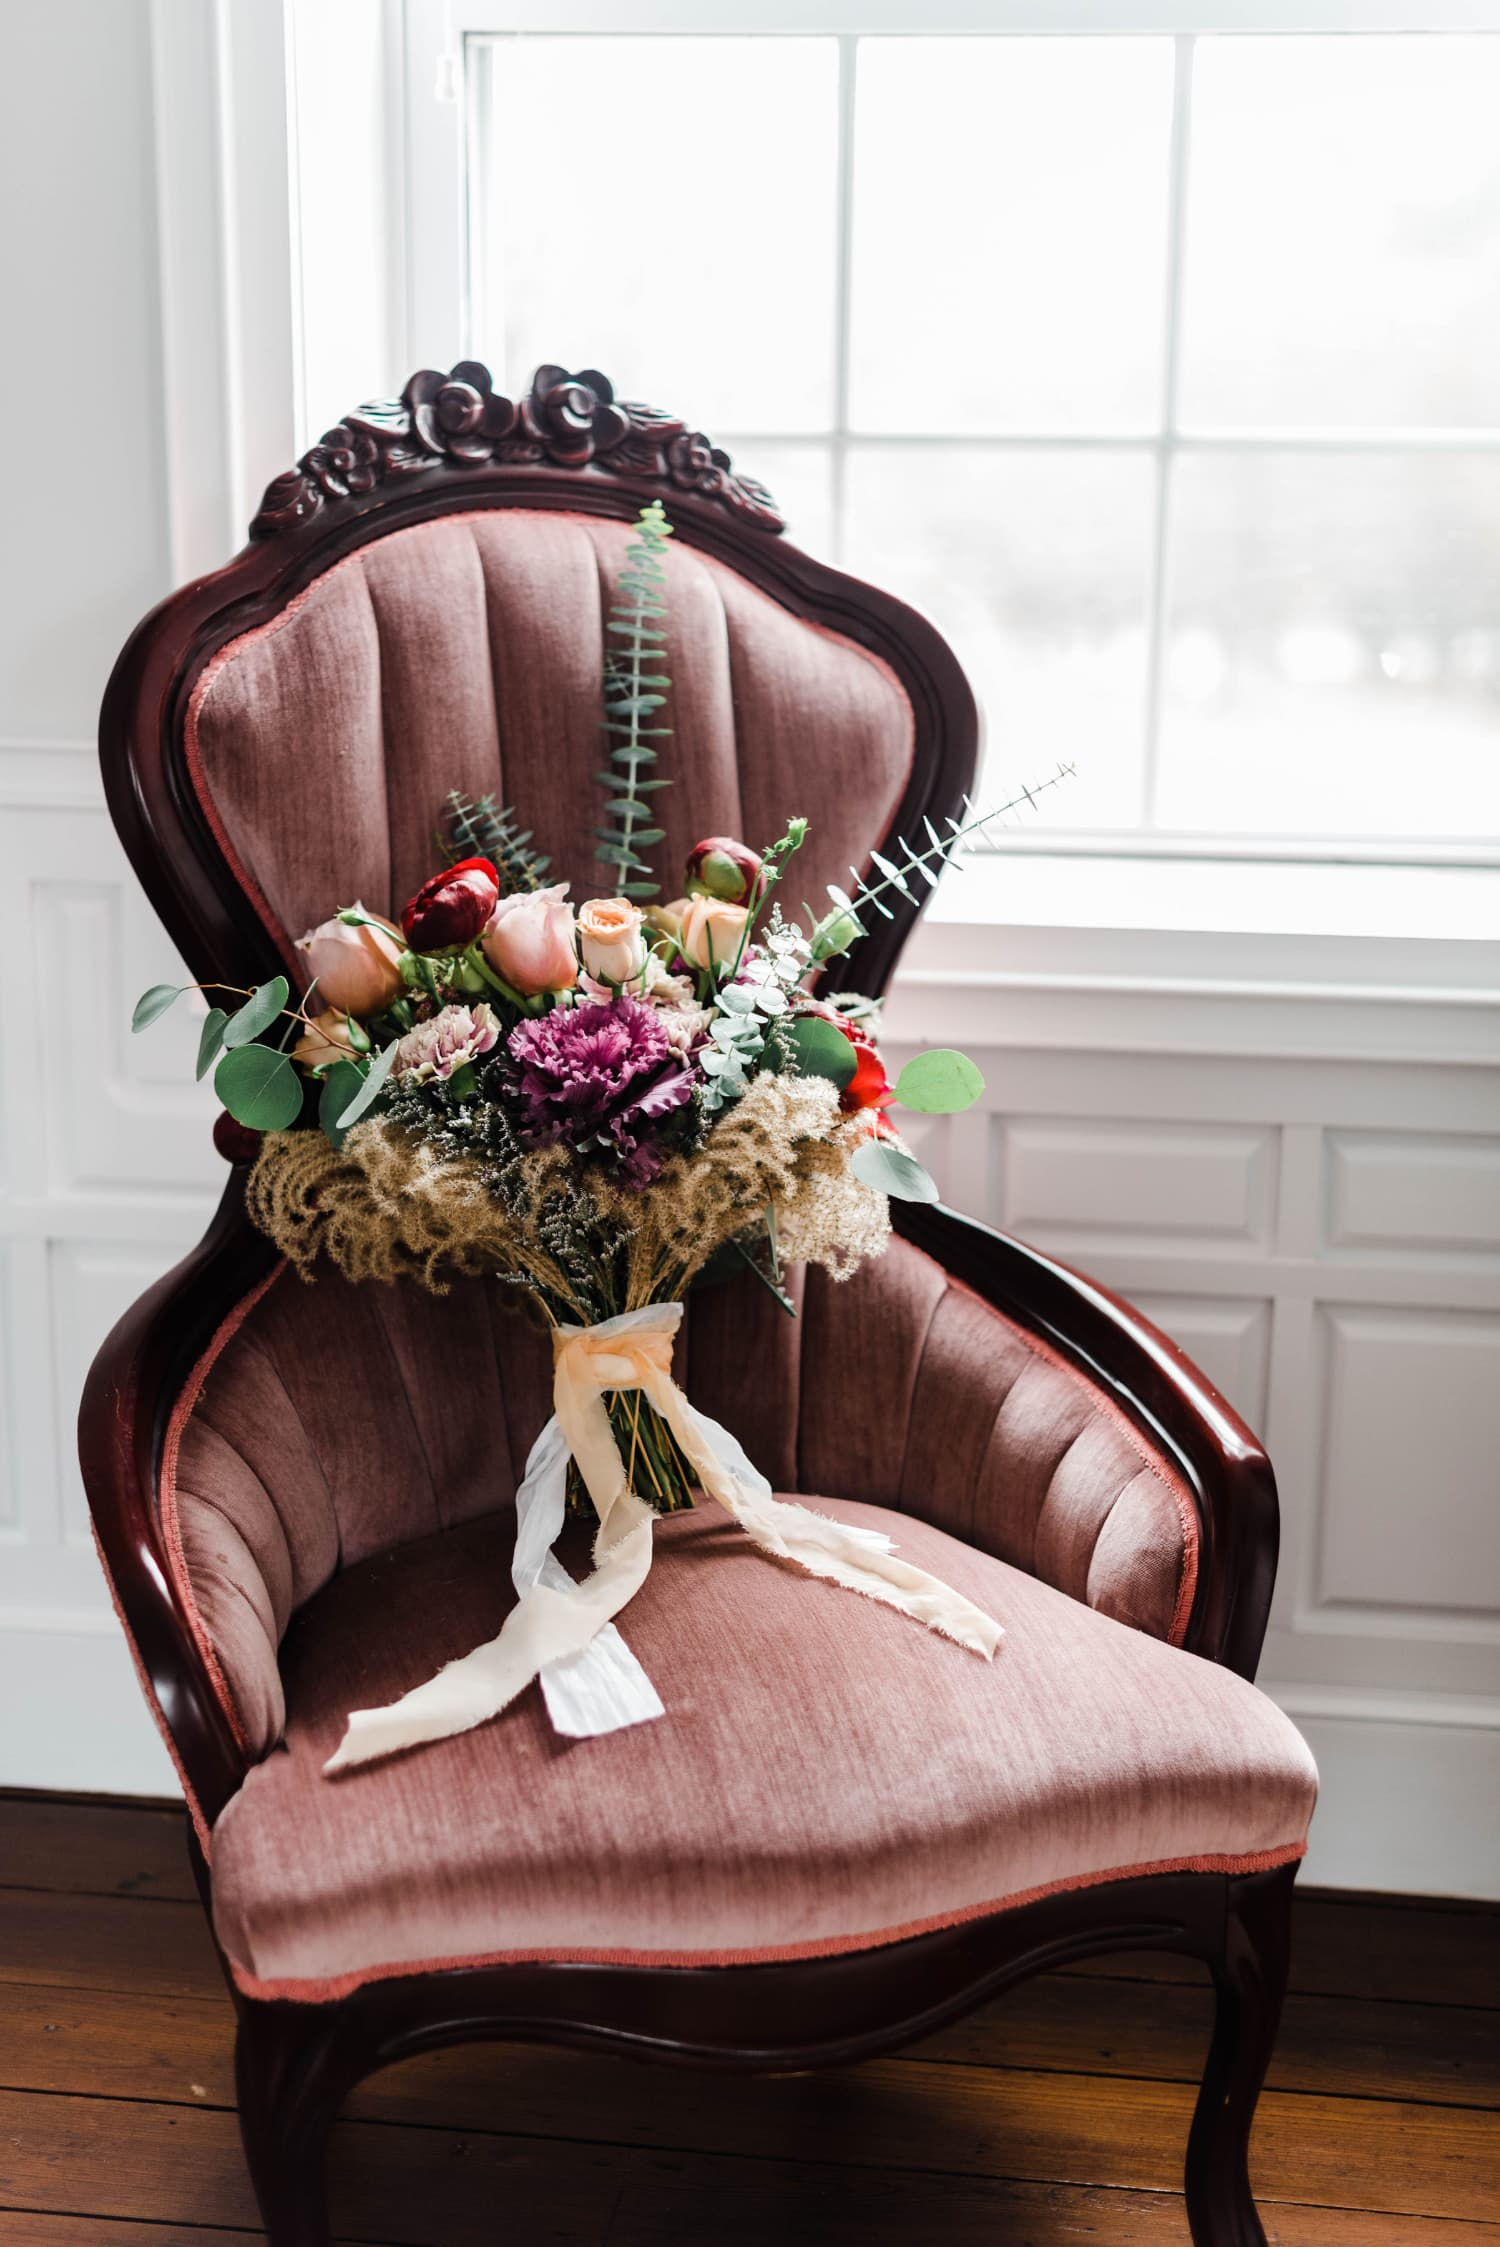 Chair with bride's bouquet at historic wedding venue in Virginia